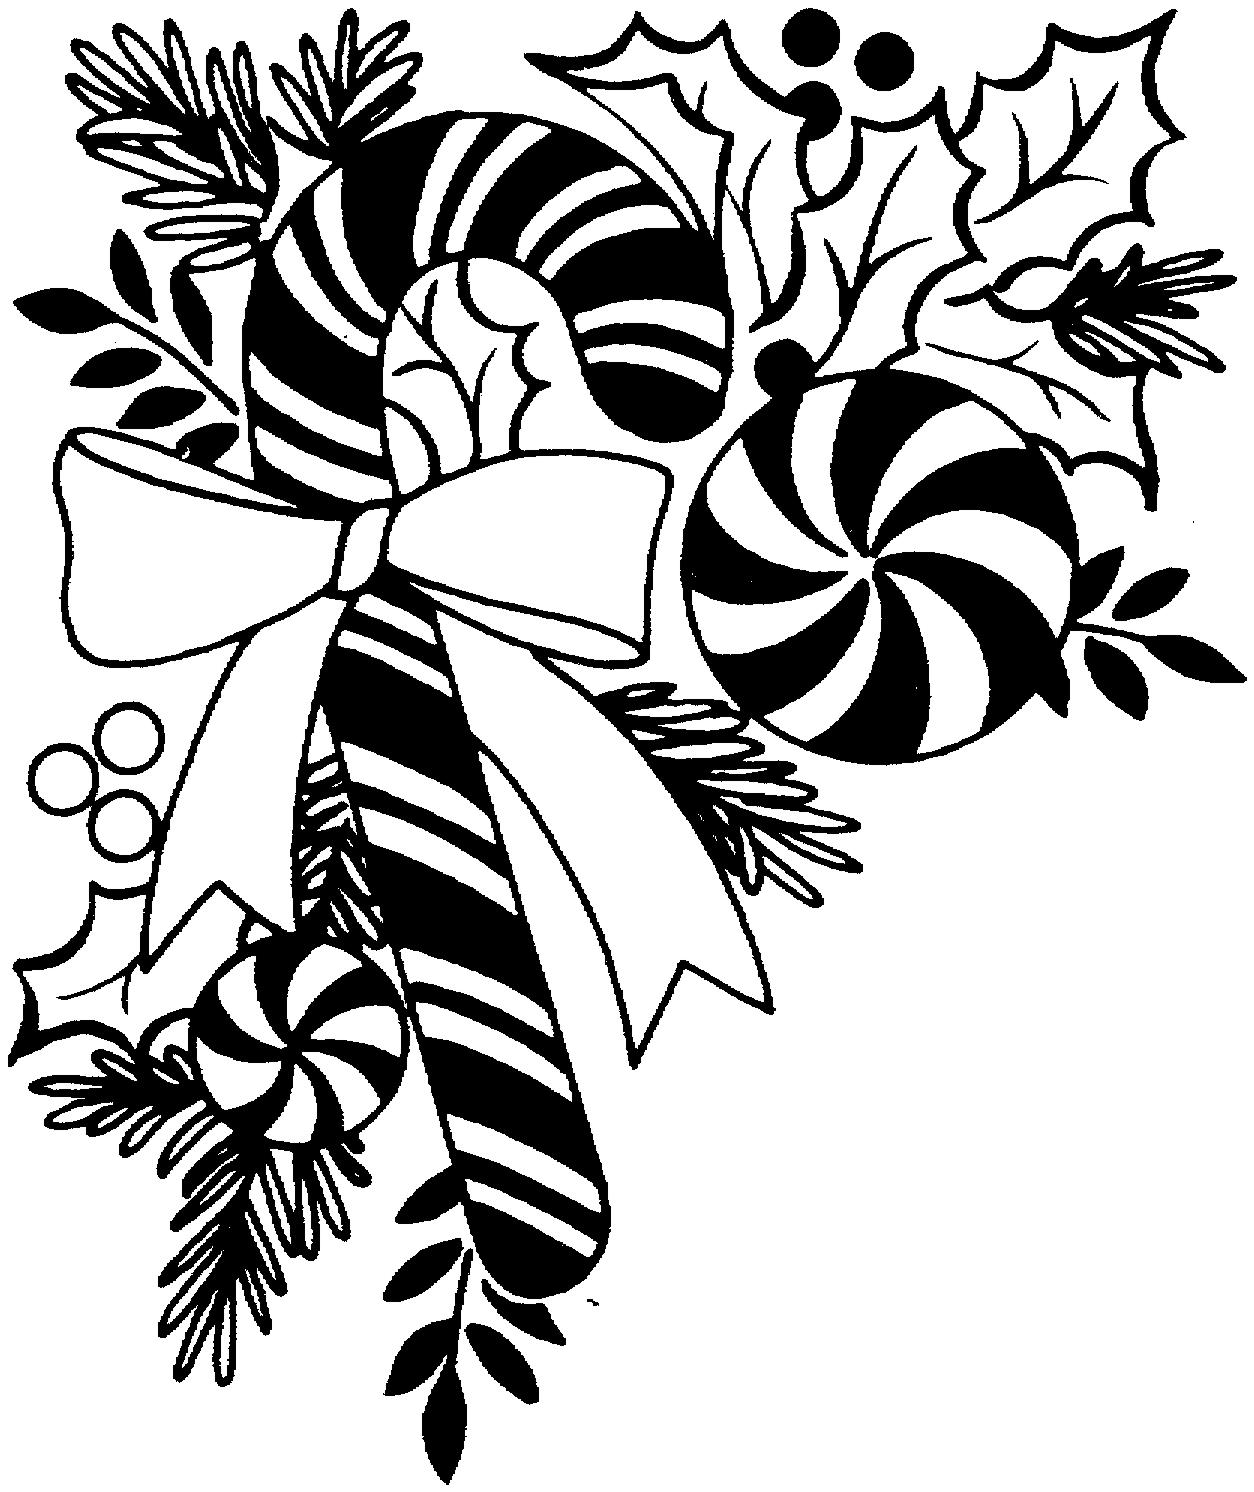 coloring christmas clipart black and white best christmas tree clipart black and white 14639 clipart and coloring christmas white black